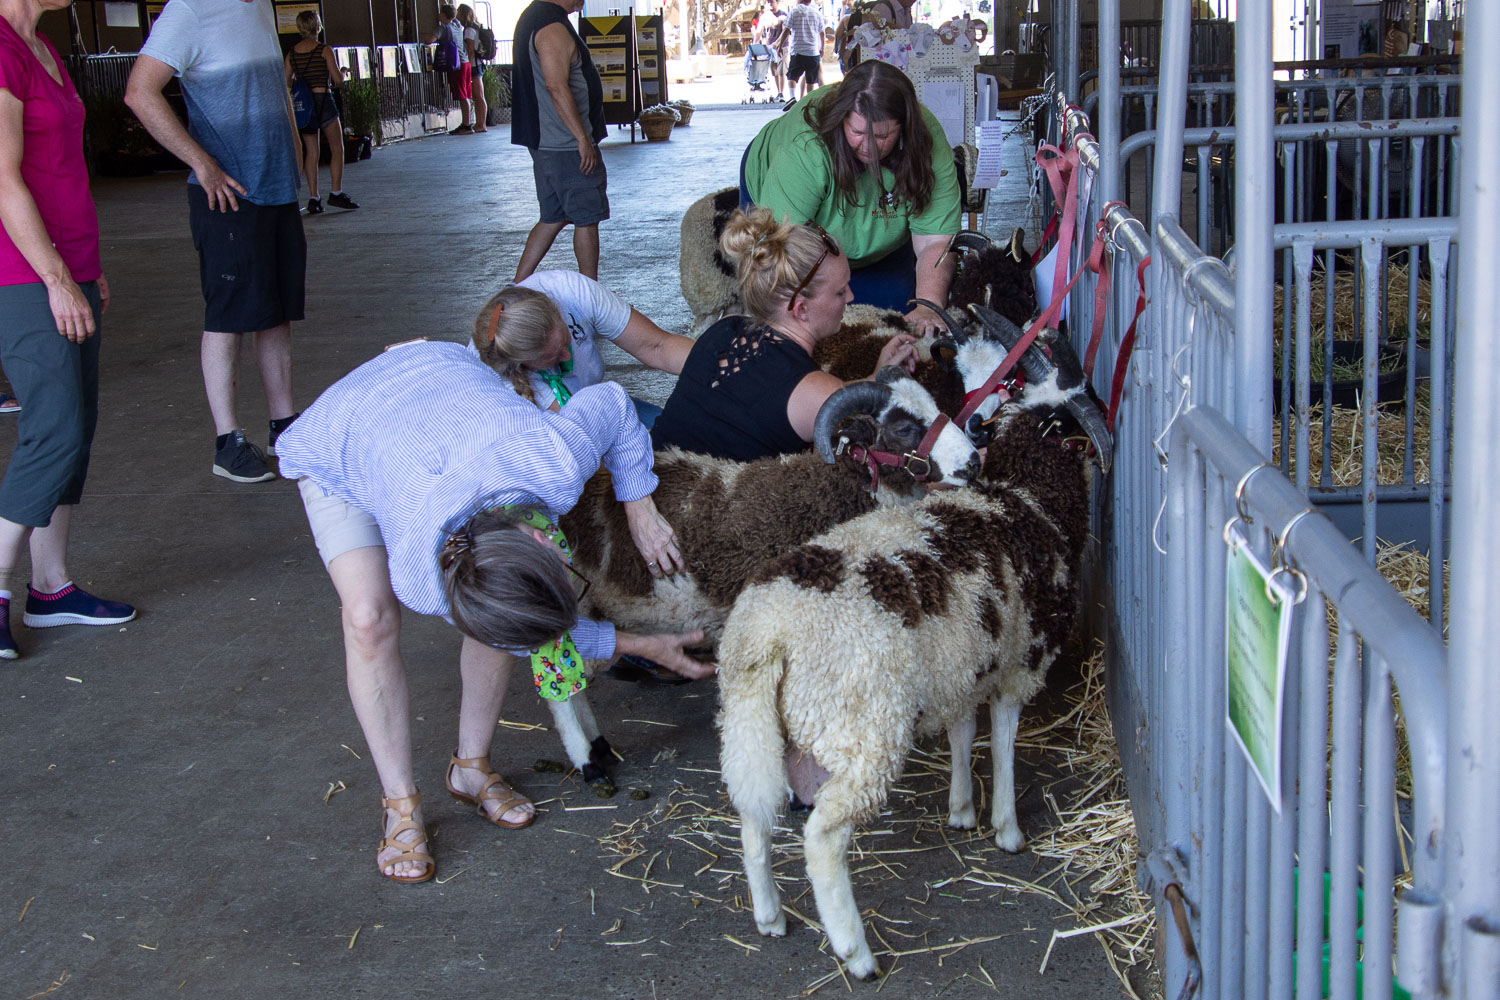 Getting sheep ready for show at california state fair.